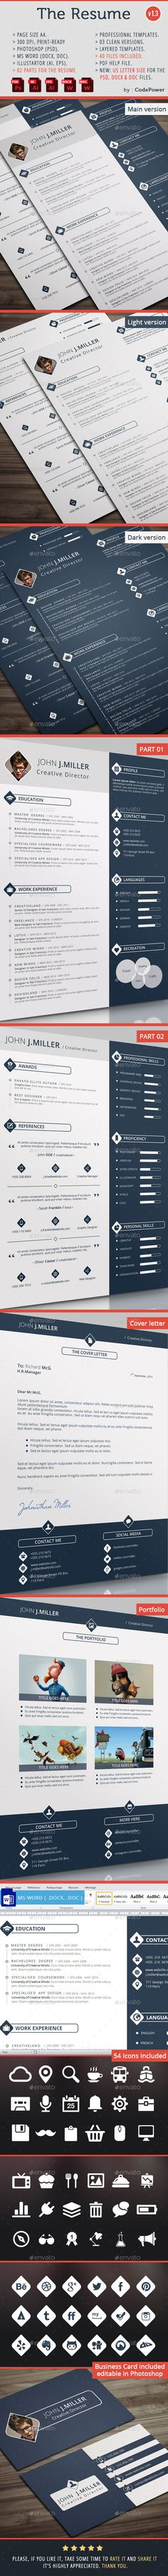 The Resume - #Resumes Stationery Download here: https://graphicriver.net/item/the-resume/8541648?ref=classicdesignp